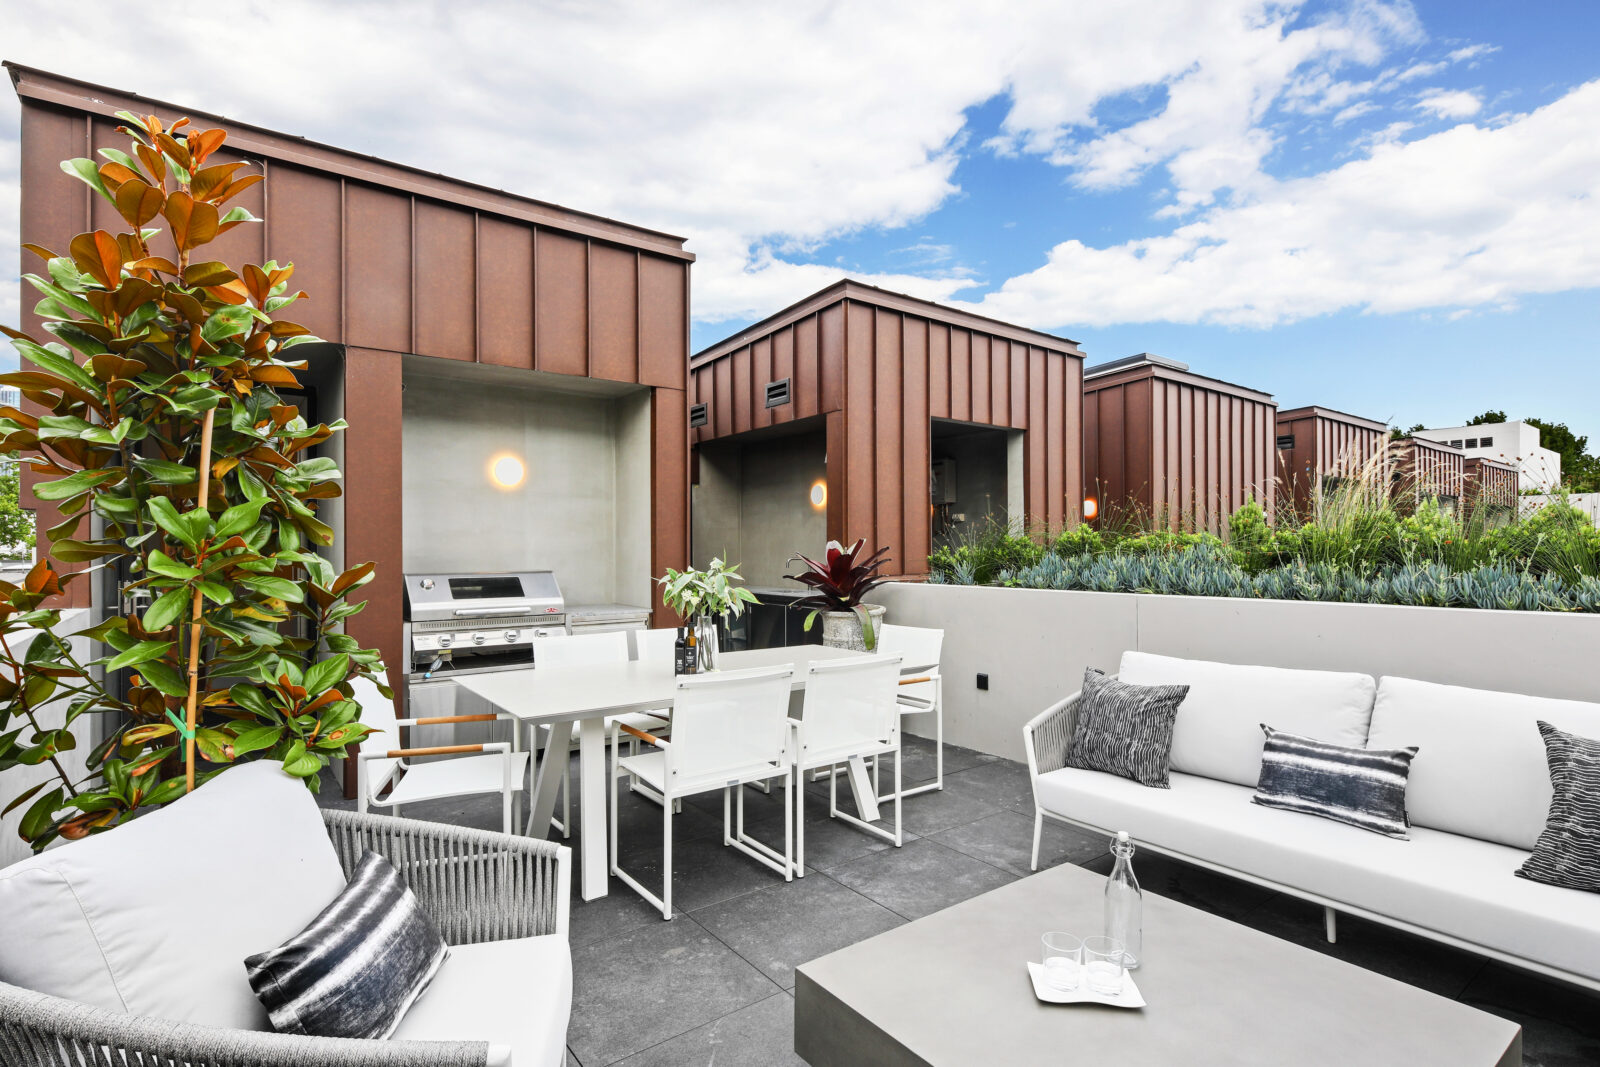 Paragon of Pyrmont: the opulent terrace estate ticking all the boxes for inner-city buyers